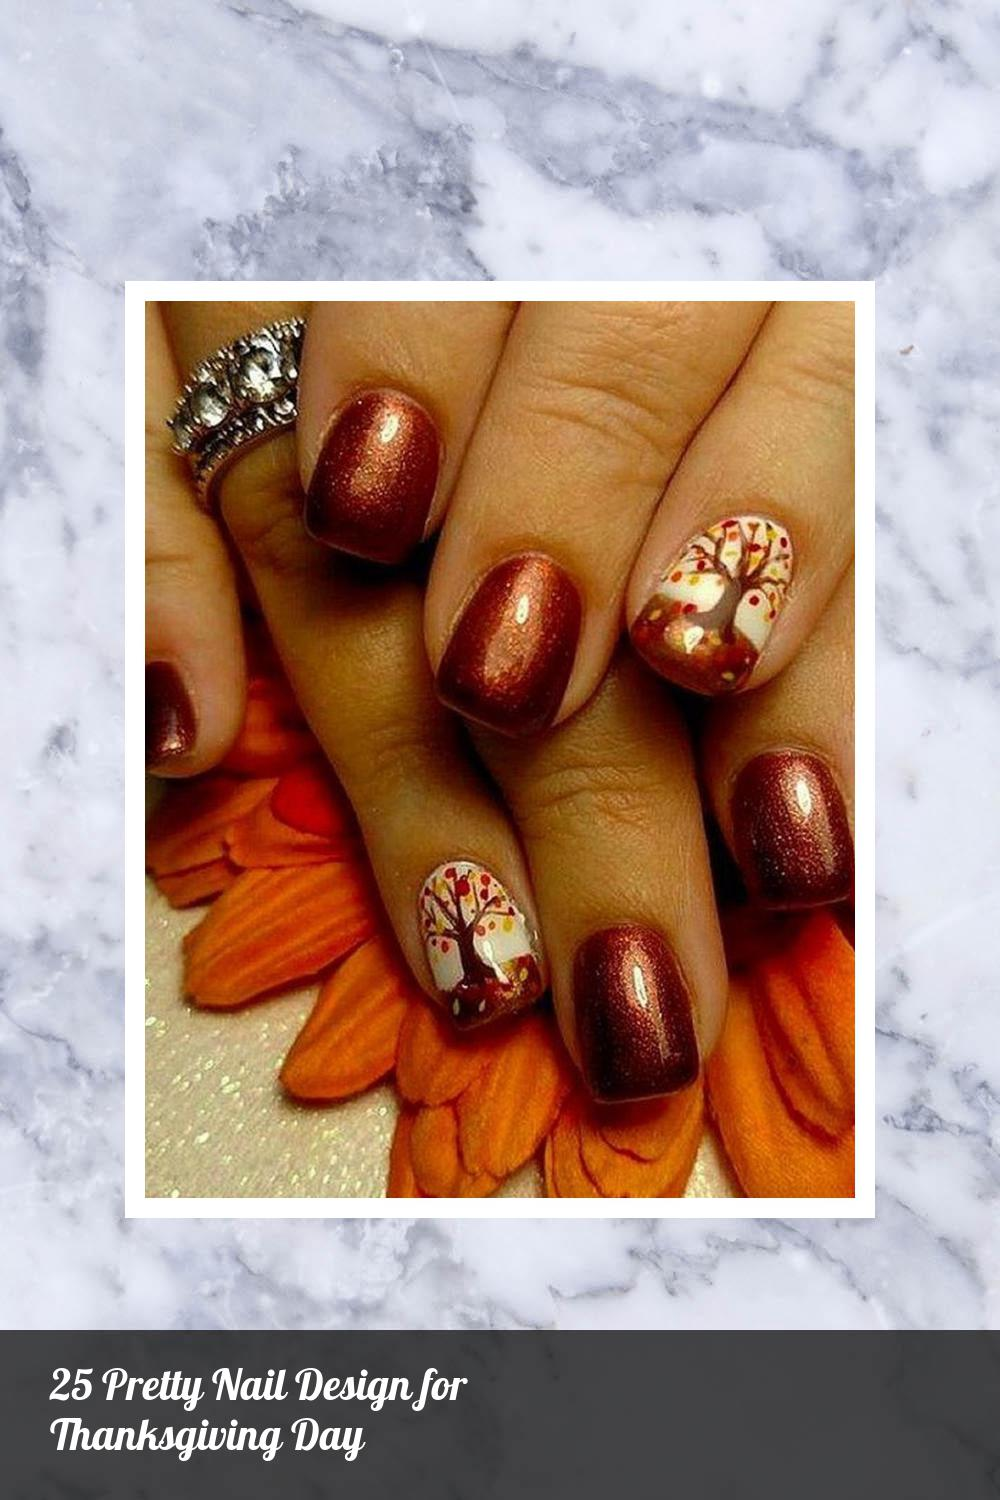 25 Pretty Nail Design for Thanksgiving Day 8